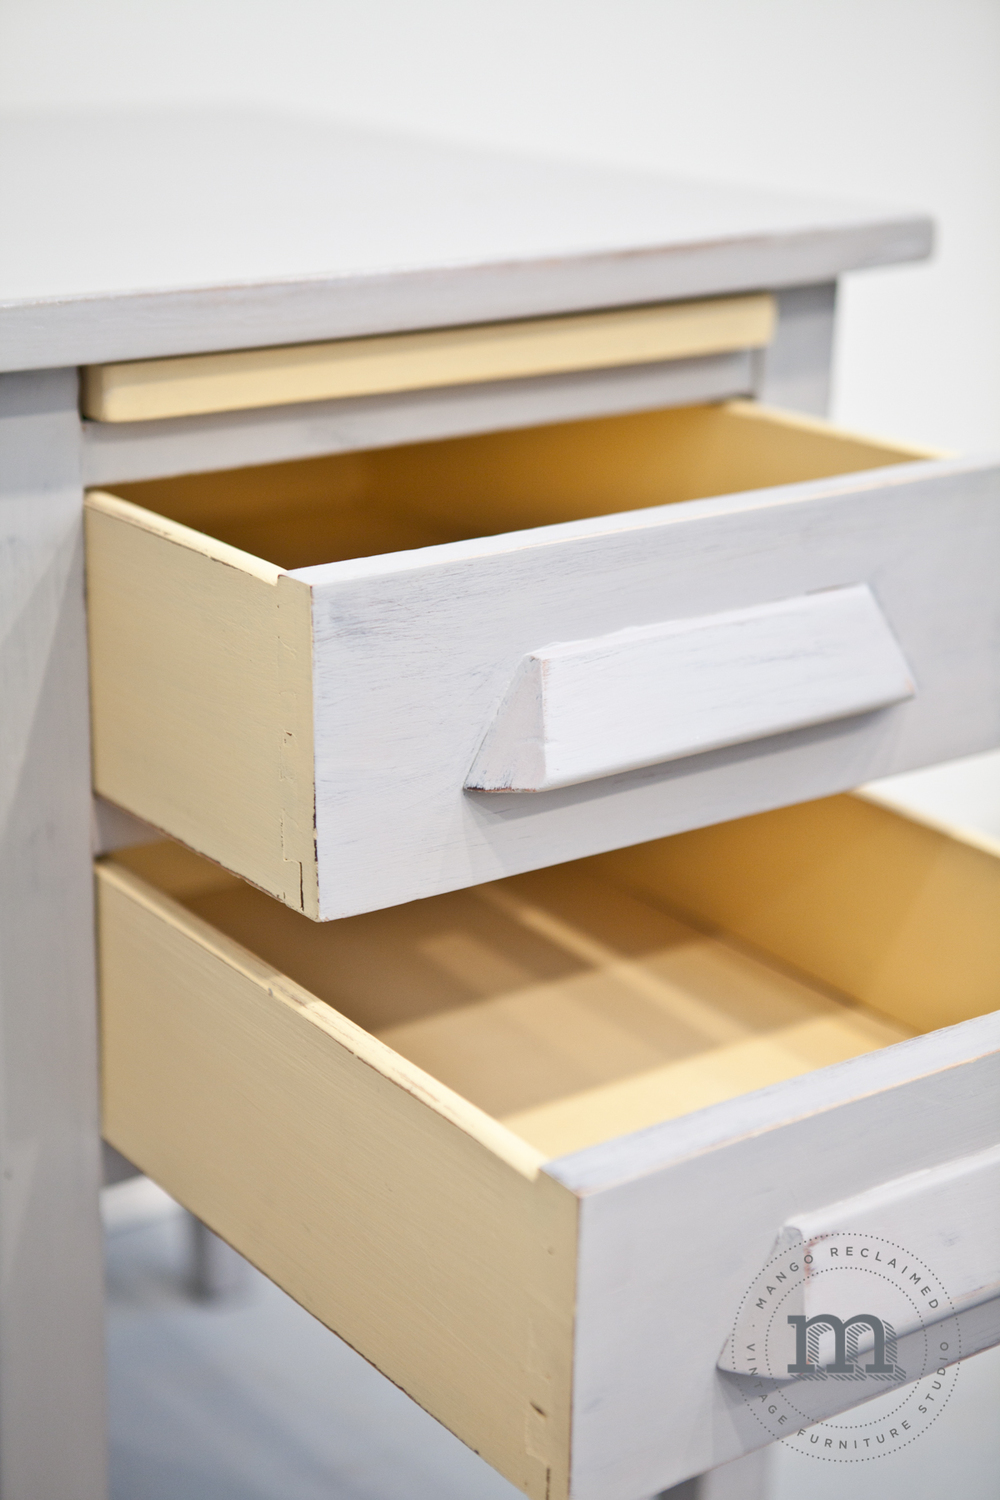 Painting the outsides of the inside drawers completes the look.